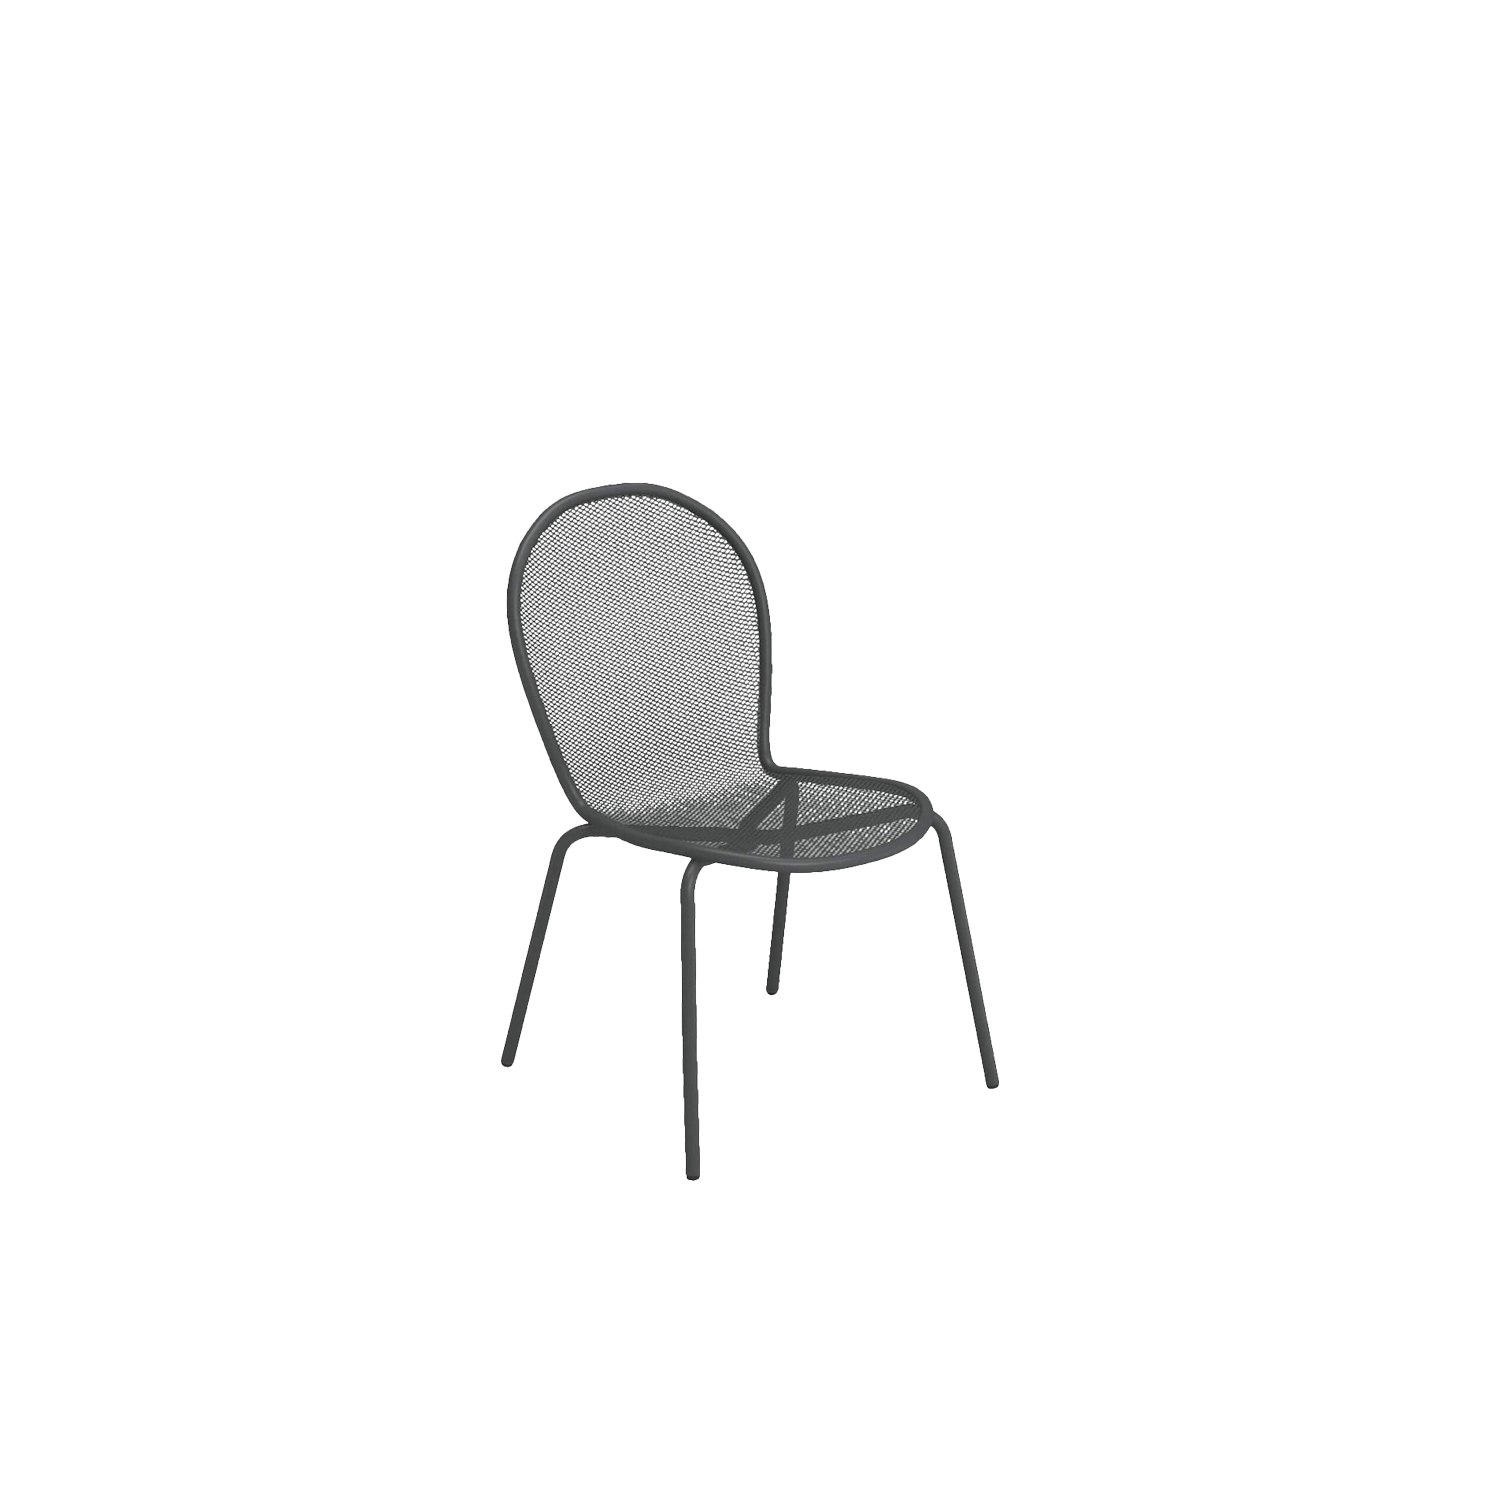 Ronda Chair - Set of 4 - With over two million pieces sold, this chair has long been a landmark world-wide, with easy design, sober and elegant lines. This set of for chairs is made from steel and comes in nine different finishes so you can choose the best finish for your space. These are outdoor chairs. Please enquire for more information